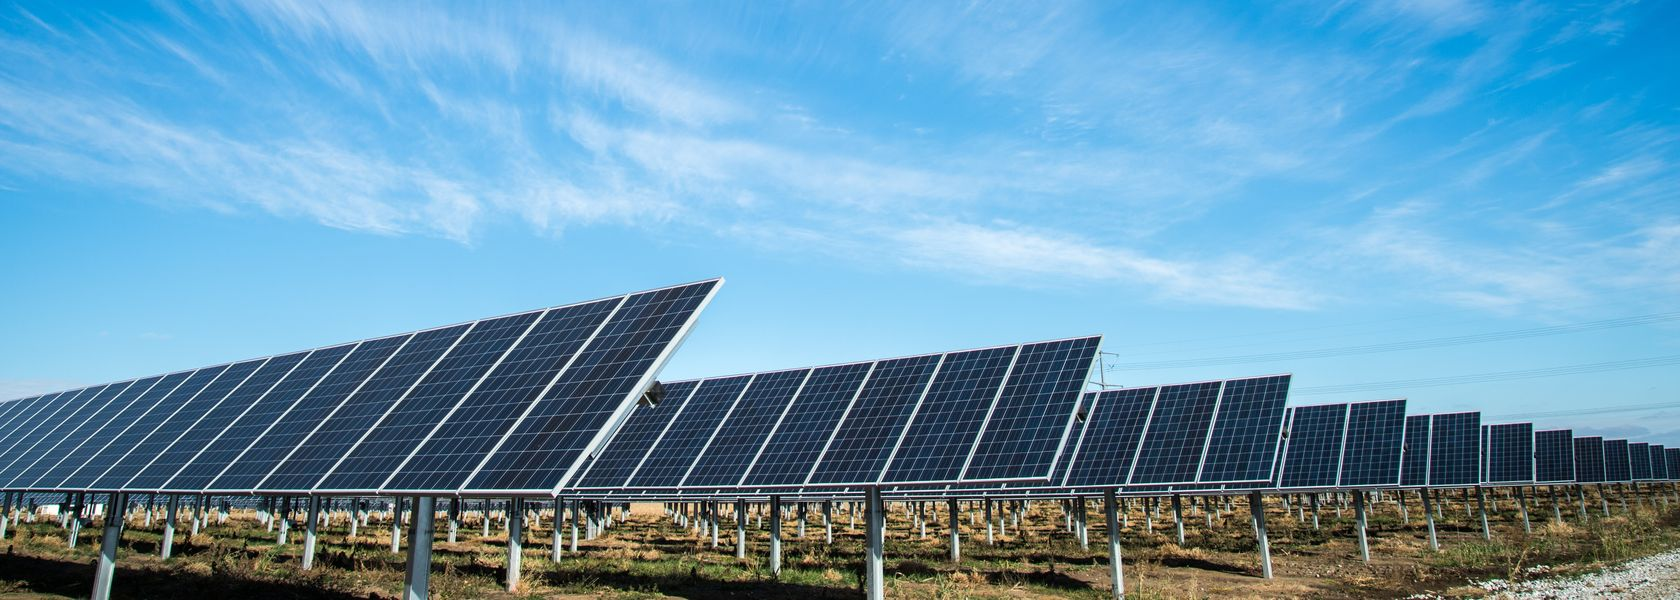 ARENA funds solar PV end-of-life research